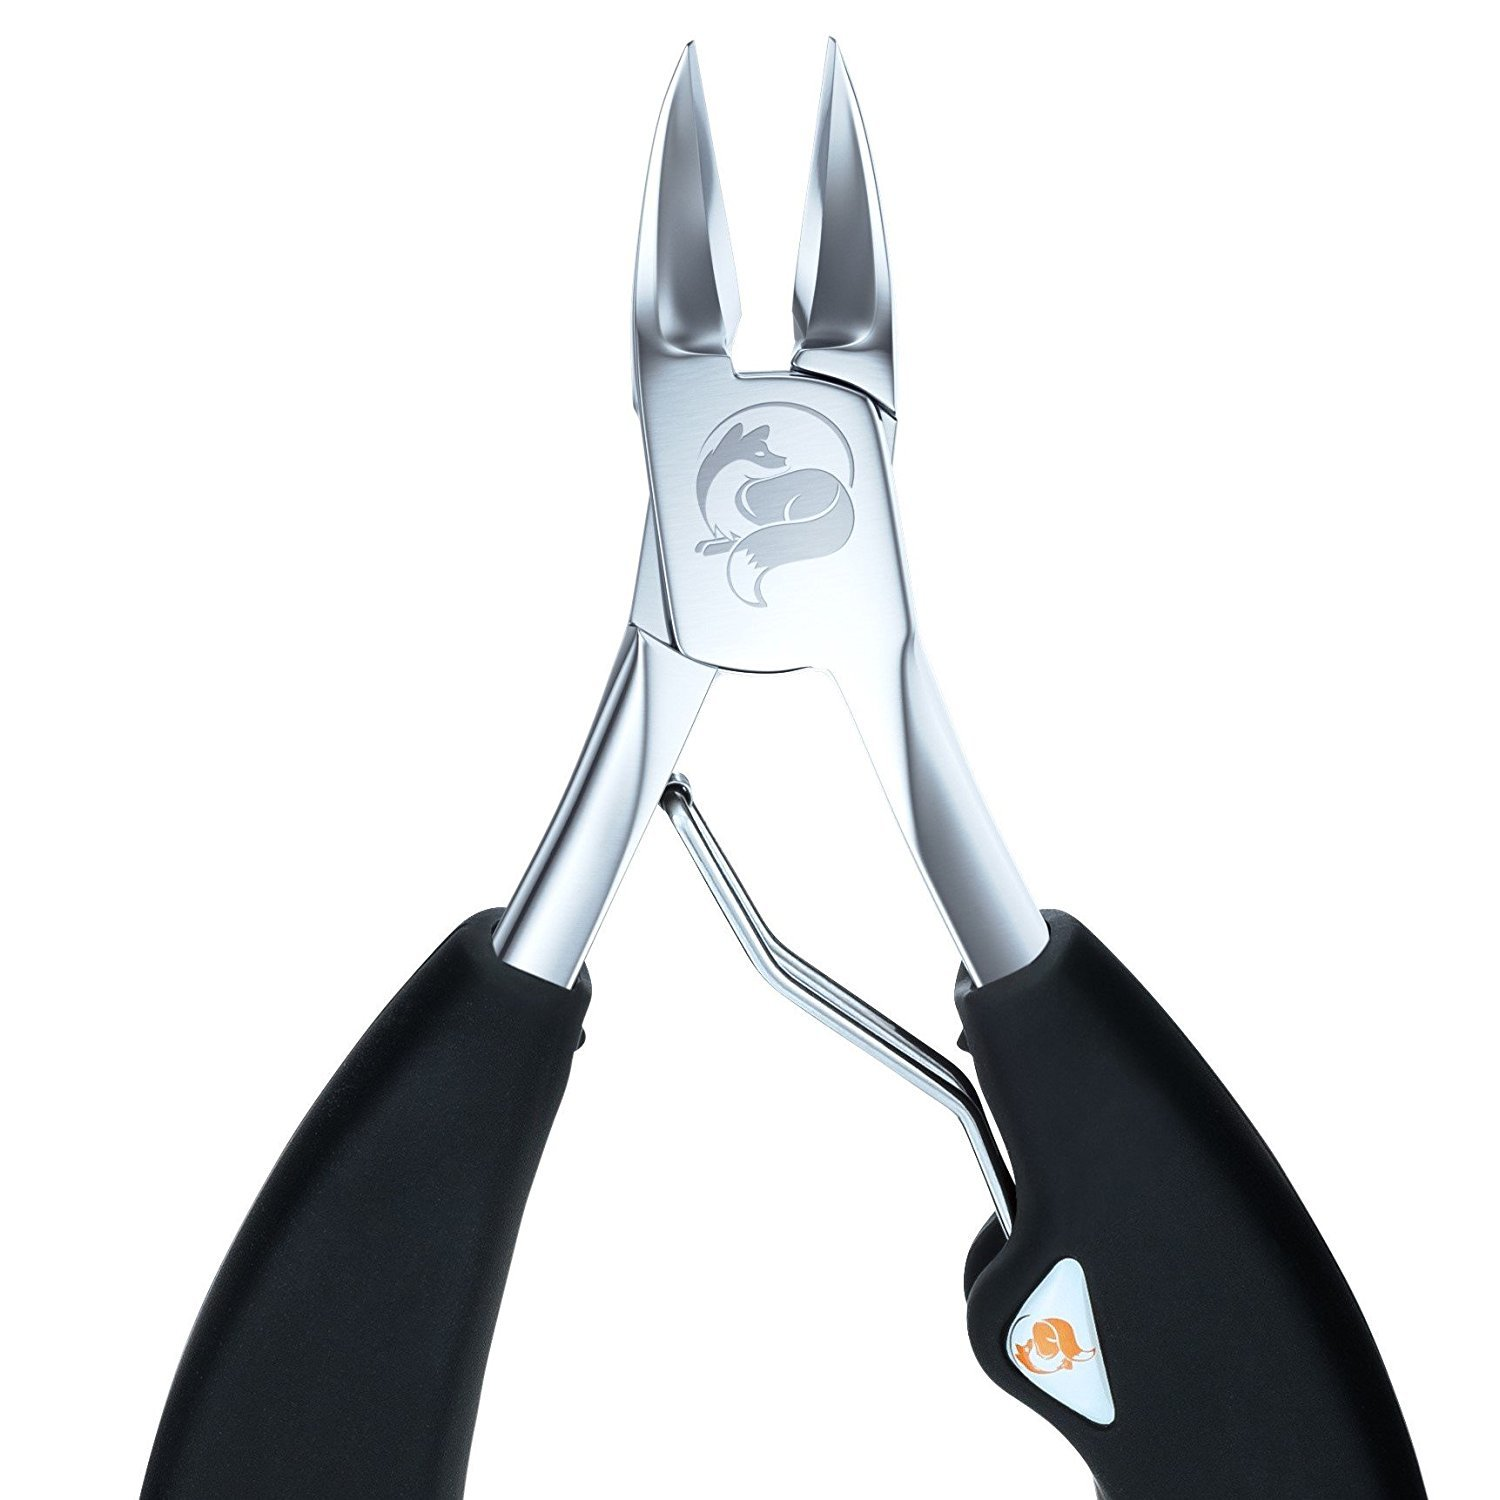 Fox Medical Equipment The Original Soft Grip Toenail Clippers by Fox Medical - Surgical Grade Stainless Steel Nail Nippers